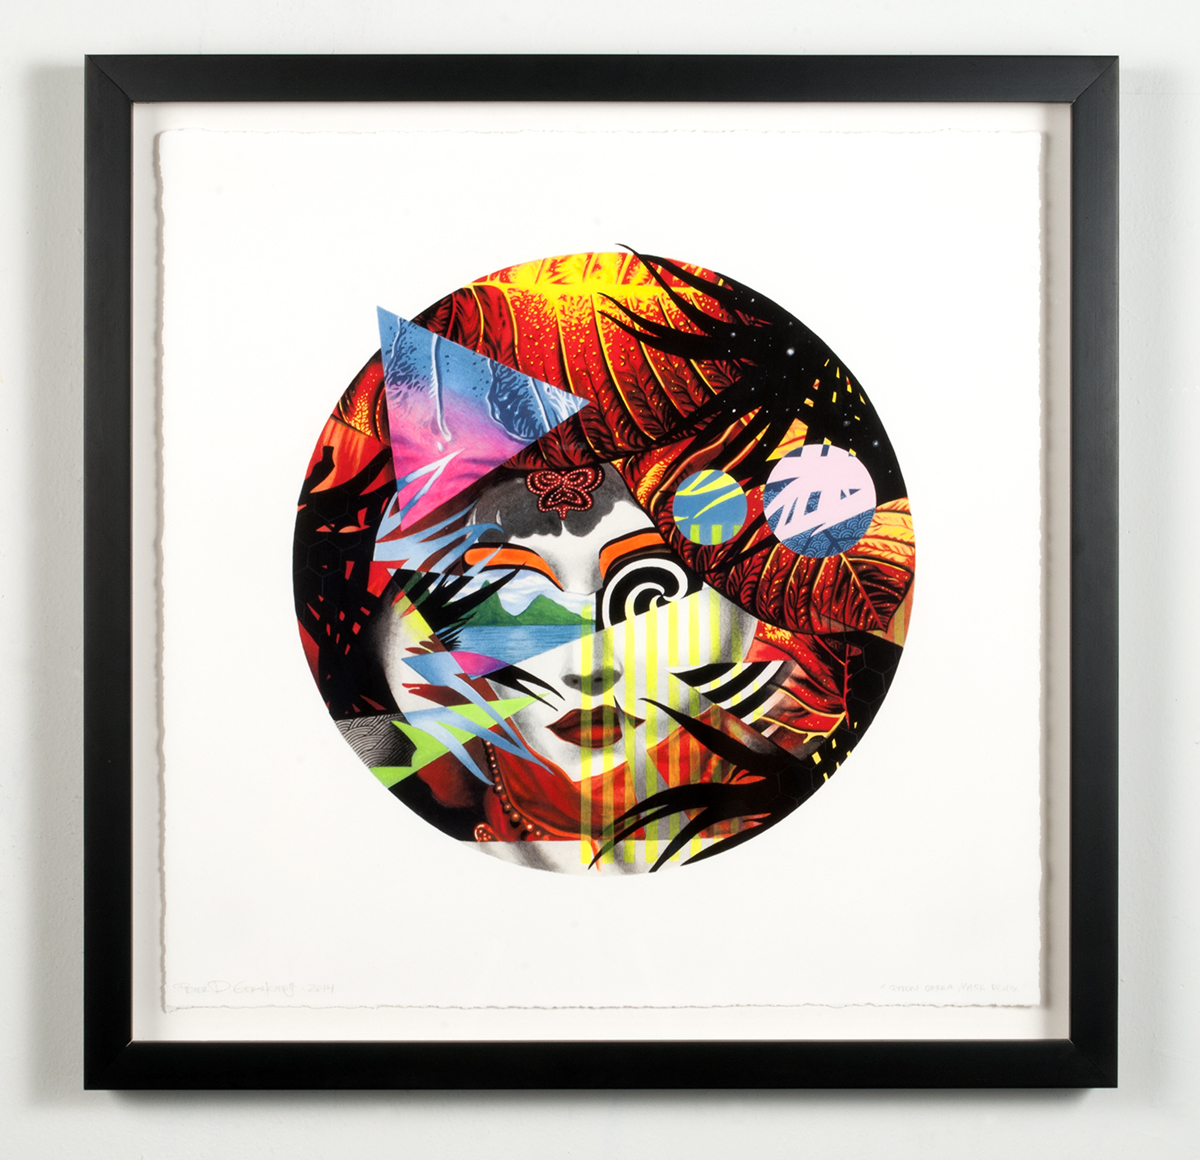 """Piton Opera Mask Remix  2014  Hand-colored archival print with gouache and acrylic on paper  16"""" x16"""" framed"""